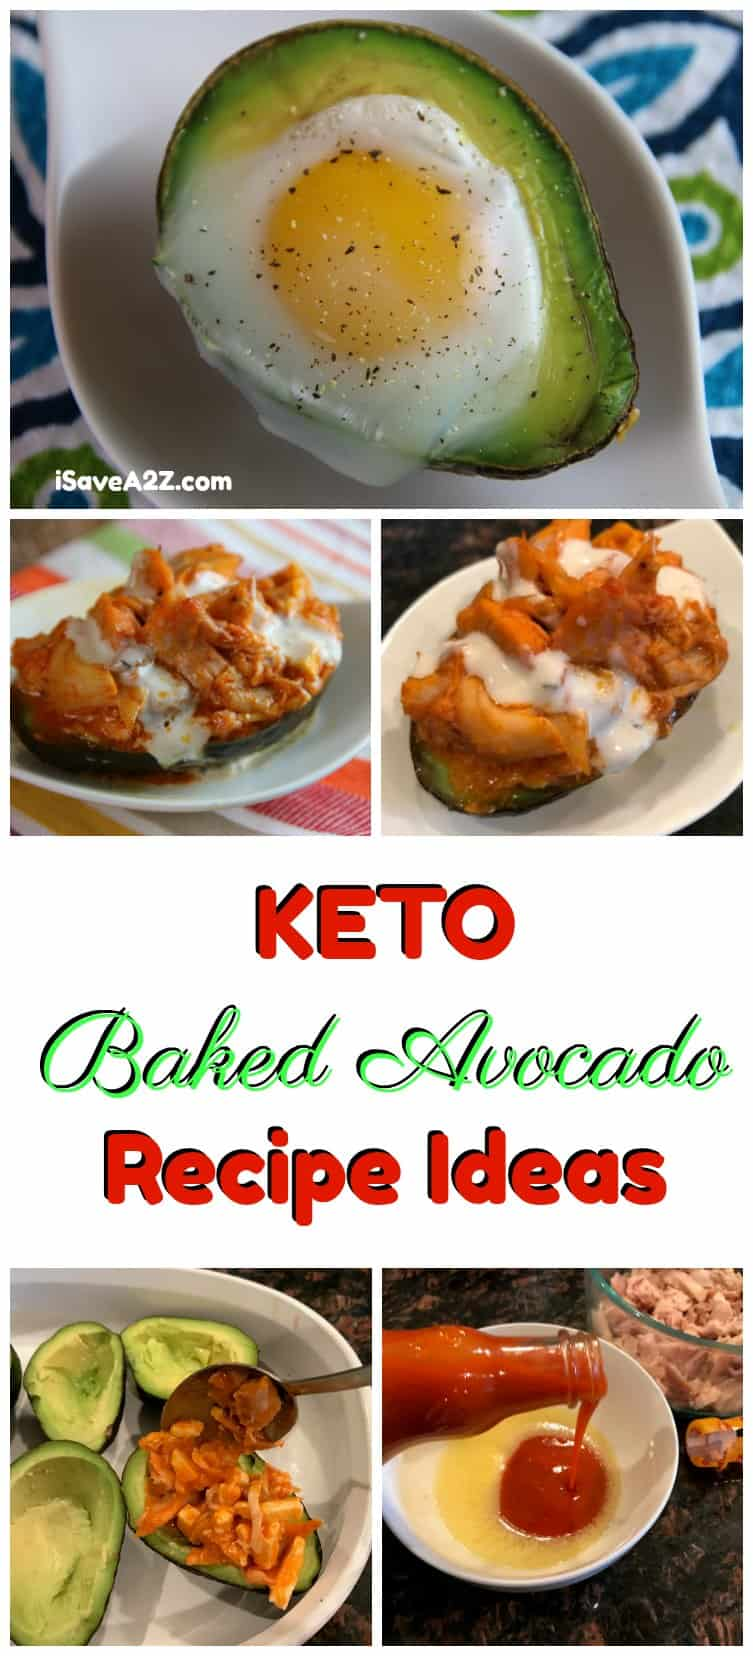 Keto Baked Avocado Recipe Ideas